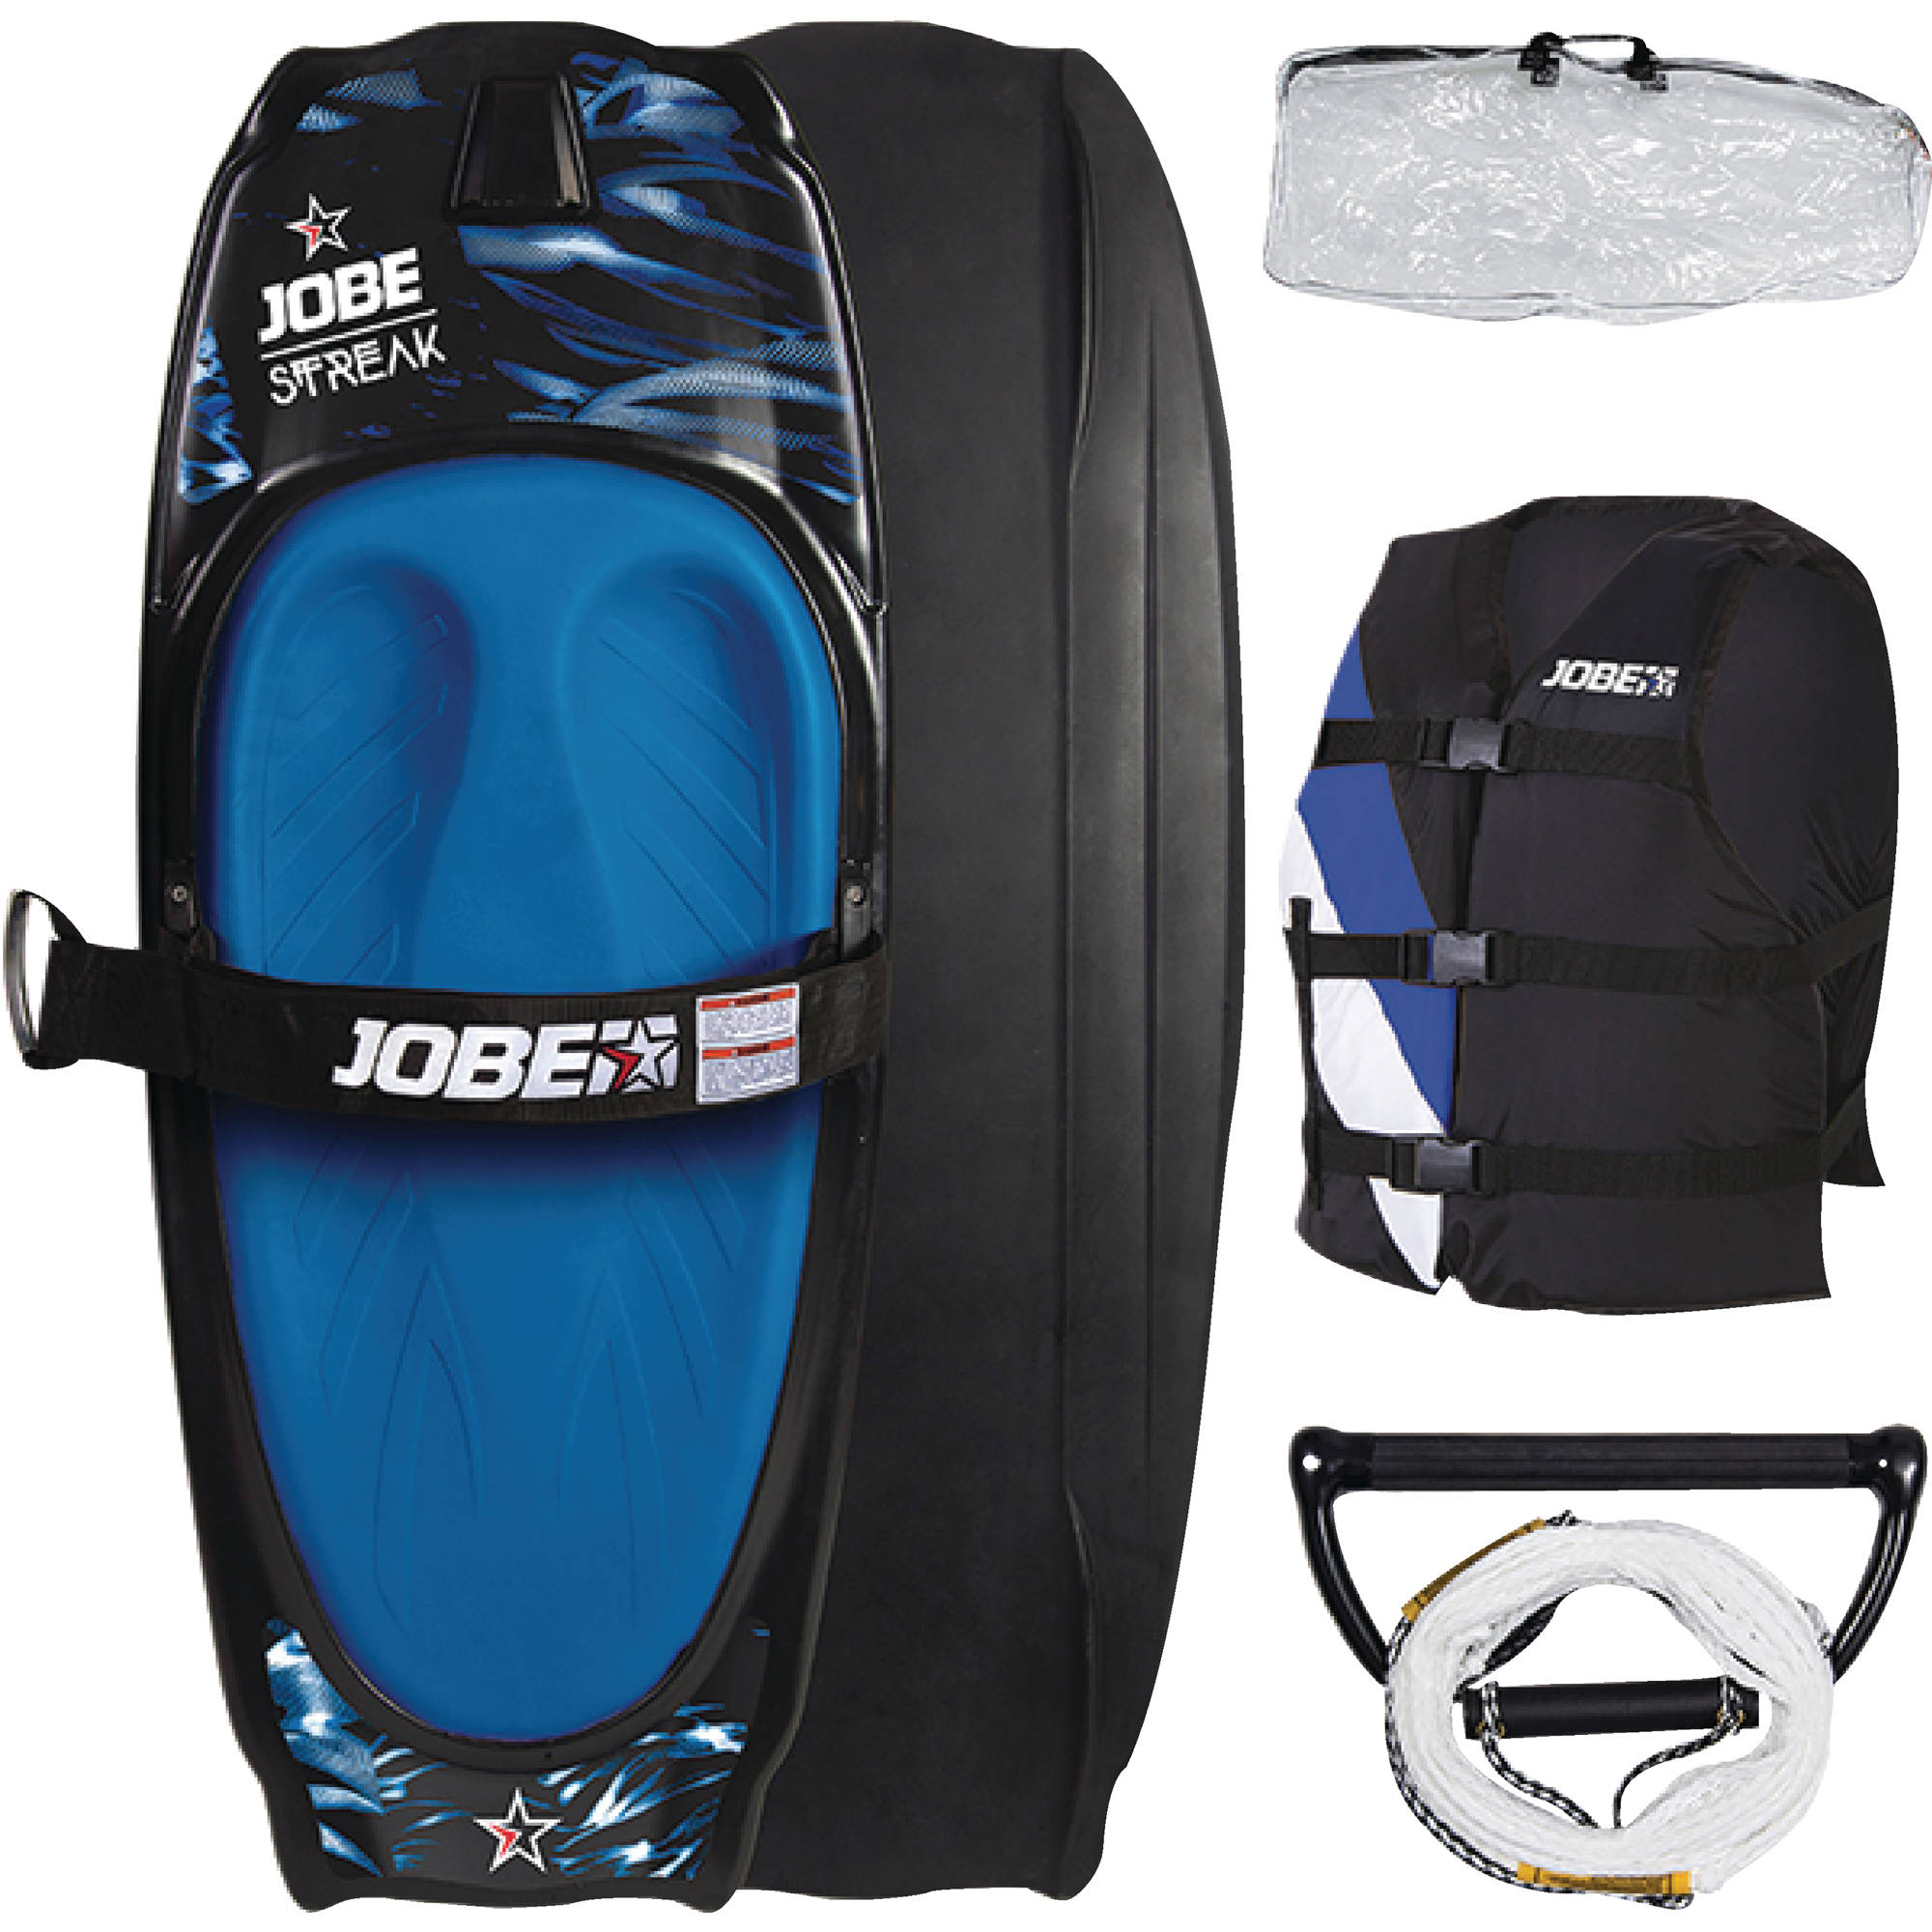 Jobe 258816002 Streaker Kneeboard Package / Includes Vest, Rope, Handle & Bag